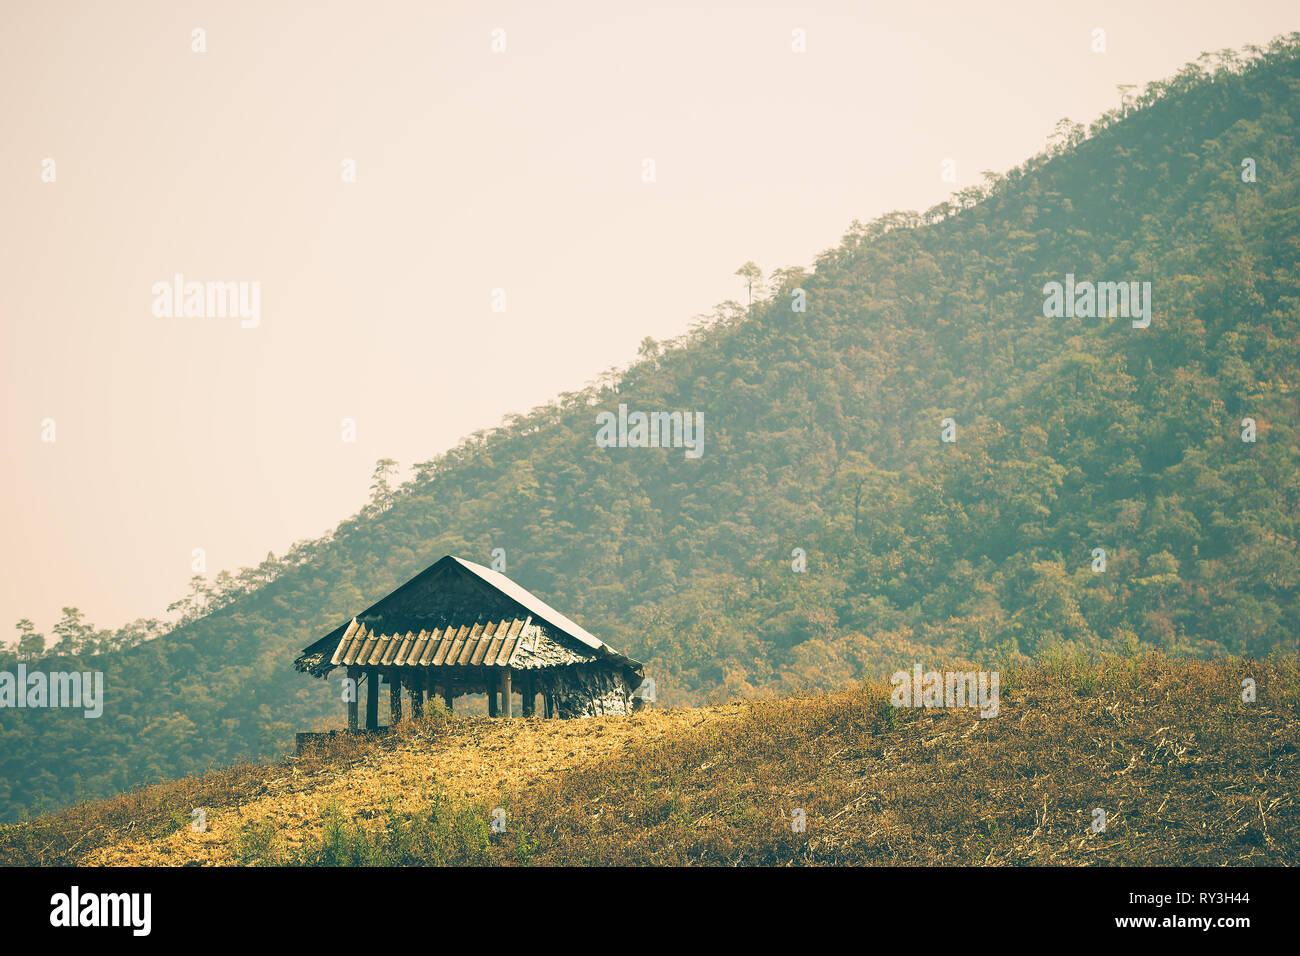 The hut among the mountains is surrounded by forests in summer. The concept of seclusion is truly blissful. Copy spaces for text. - Stock Image